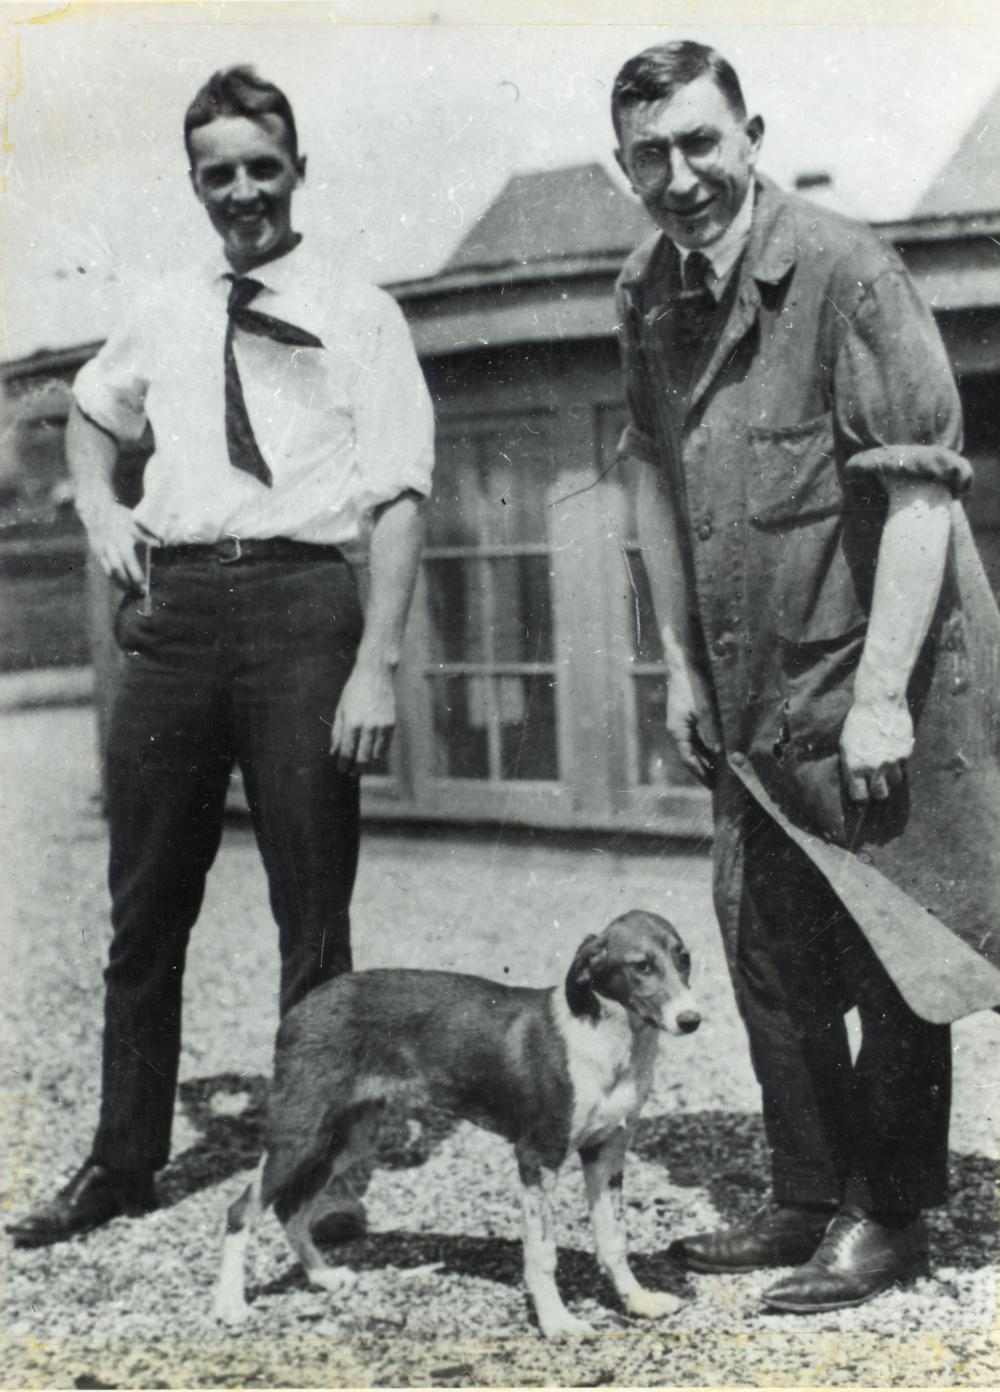 Iconic photo likely taken in the summer of 1921 of Dr. Frederick Banting (right) and Charles Best on the roof of the U of T Medical Building, with one of the dogs that helped show that pancreatic extract could control blood sugar levels.